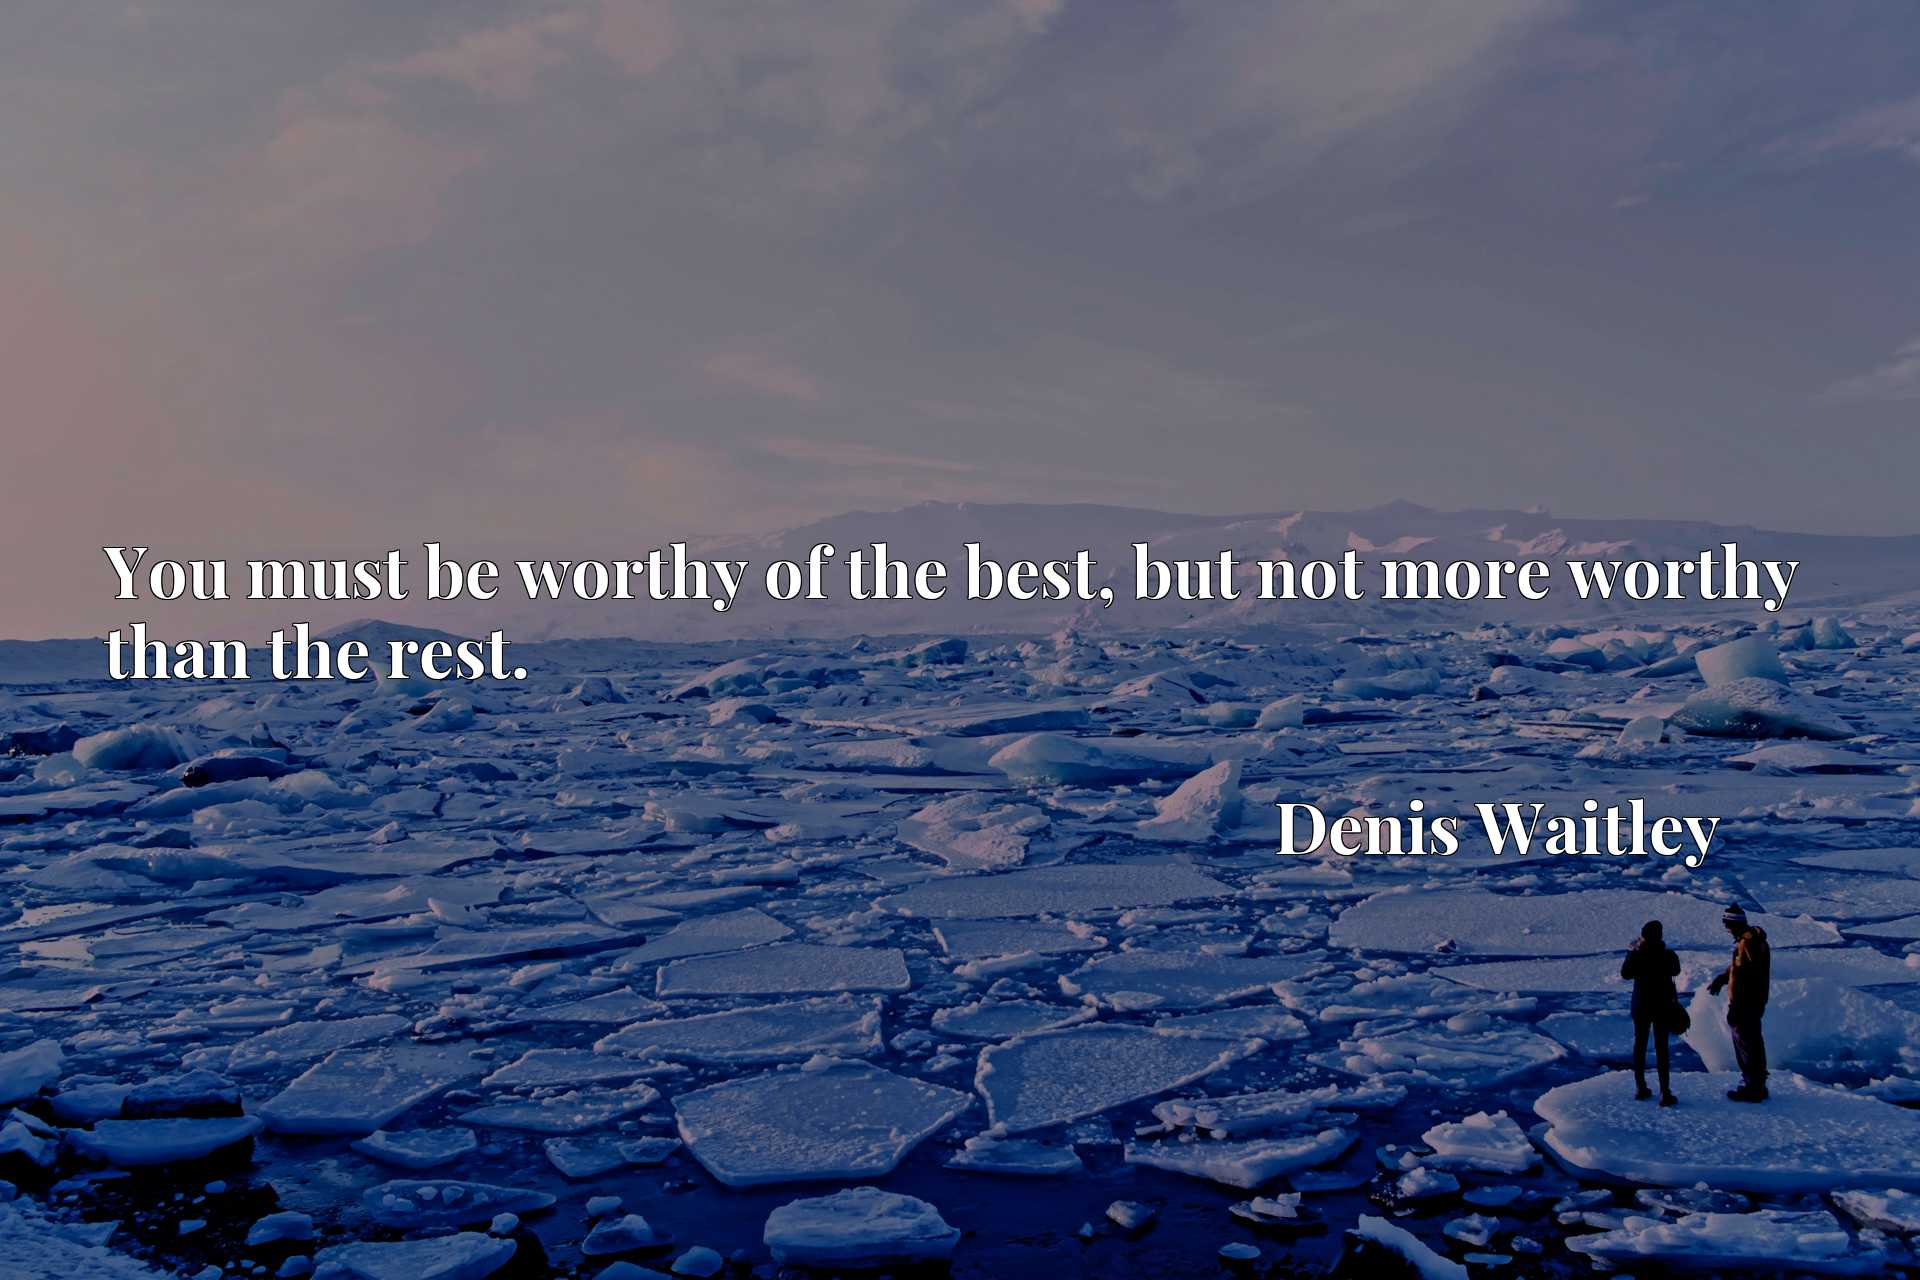 You must be worthy of the best, but not more worthy than the rest.